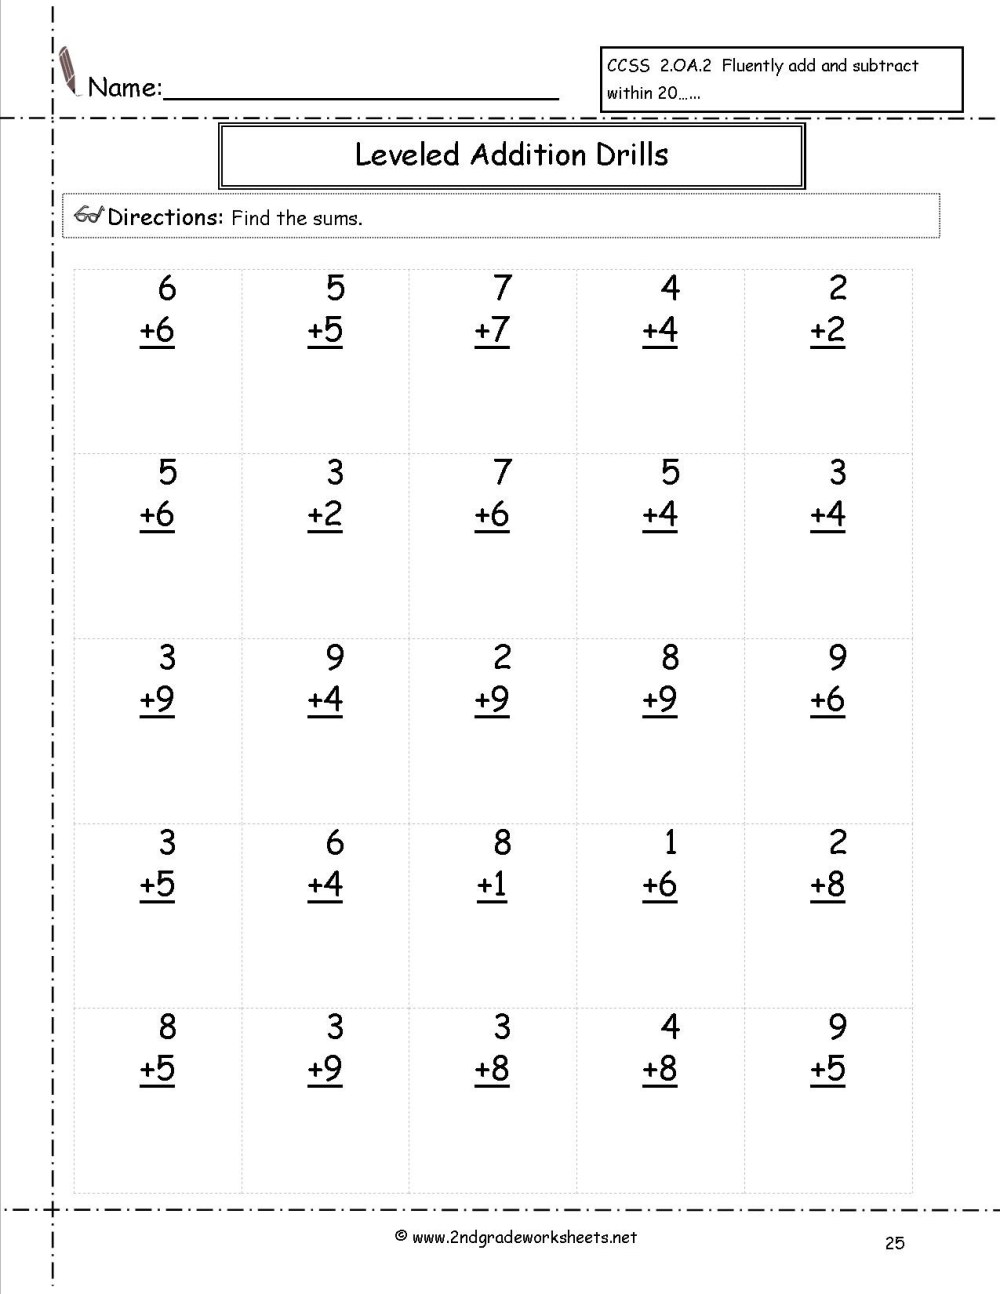 medium resolution of 4 Free Math Worksheets Second Grade 2 Multiplication Multiplication Table 2  3 - apocalomegaproductions.com